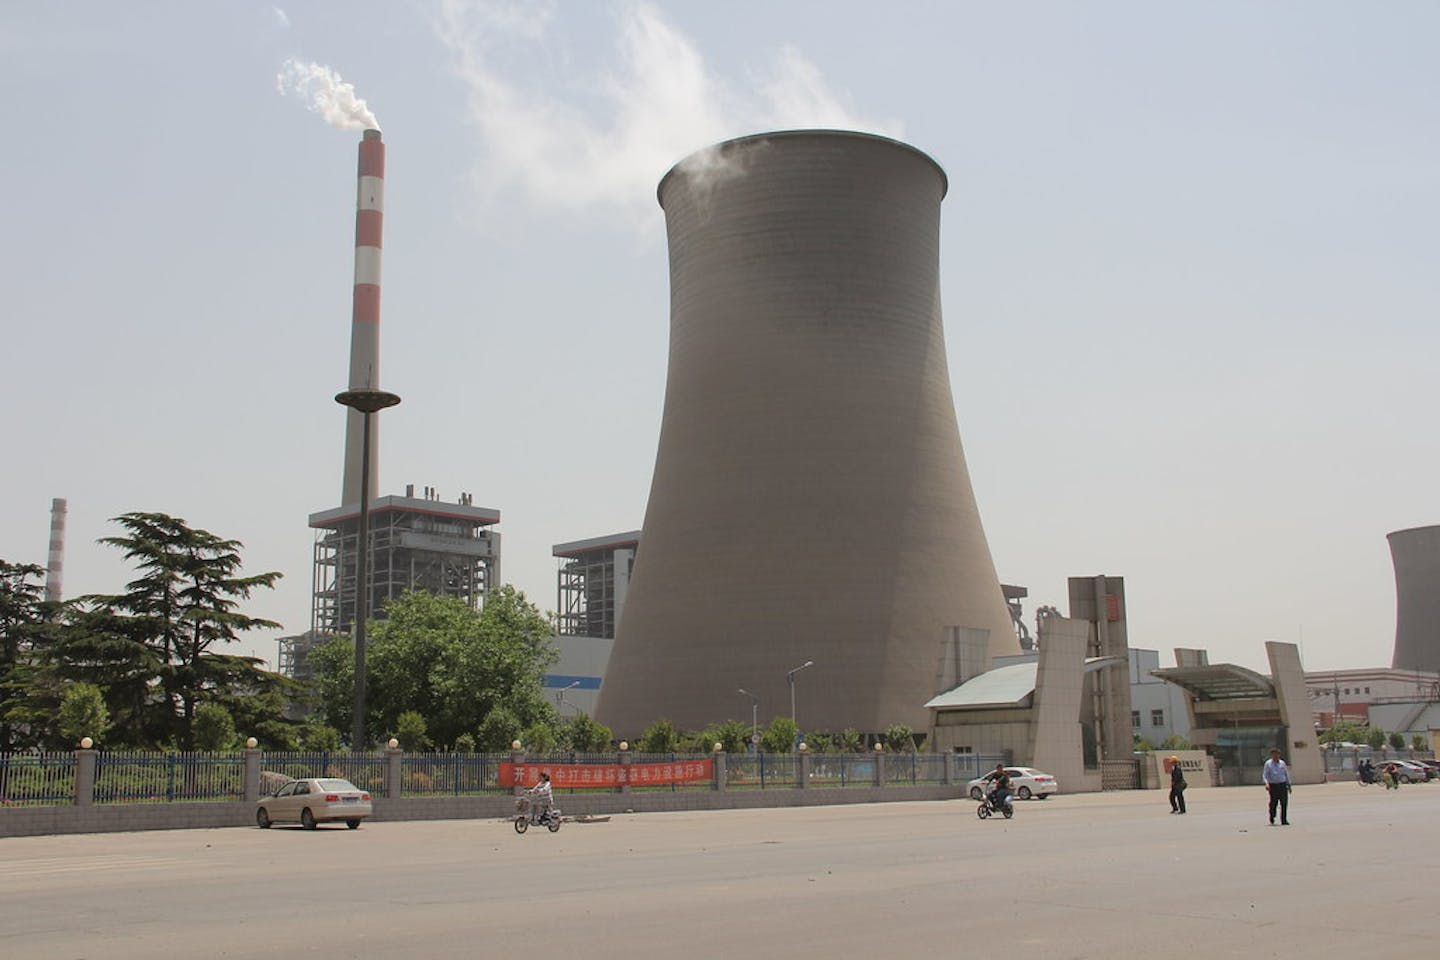 Coal-fired plant in Henan, China.